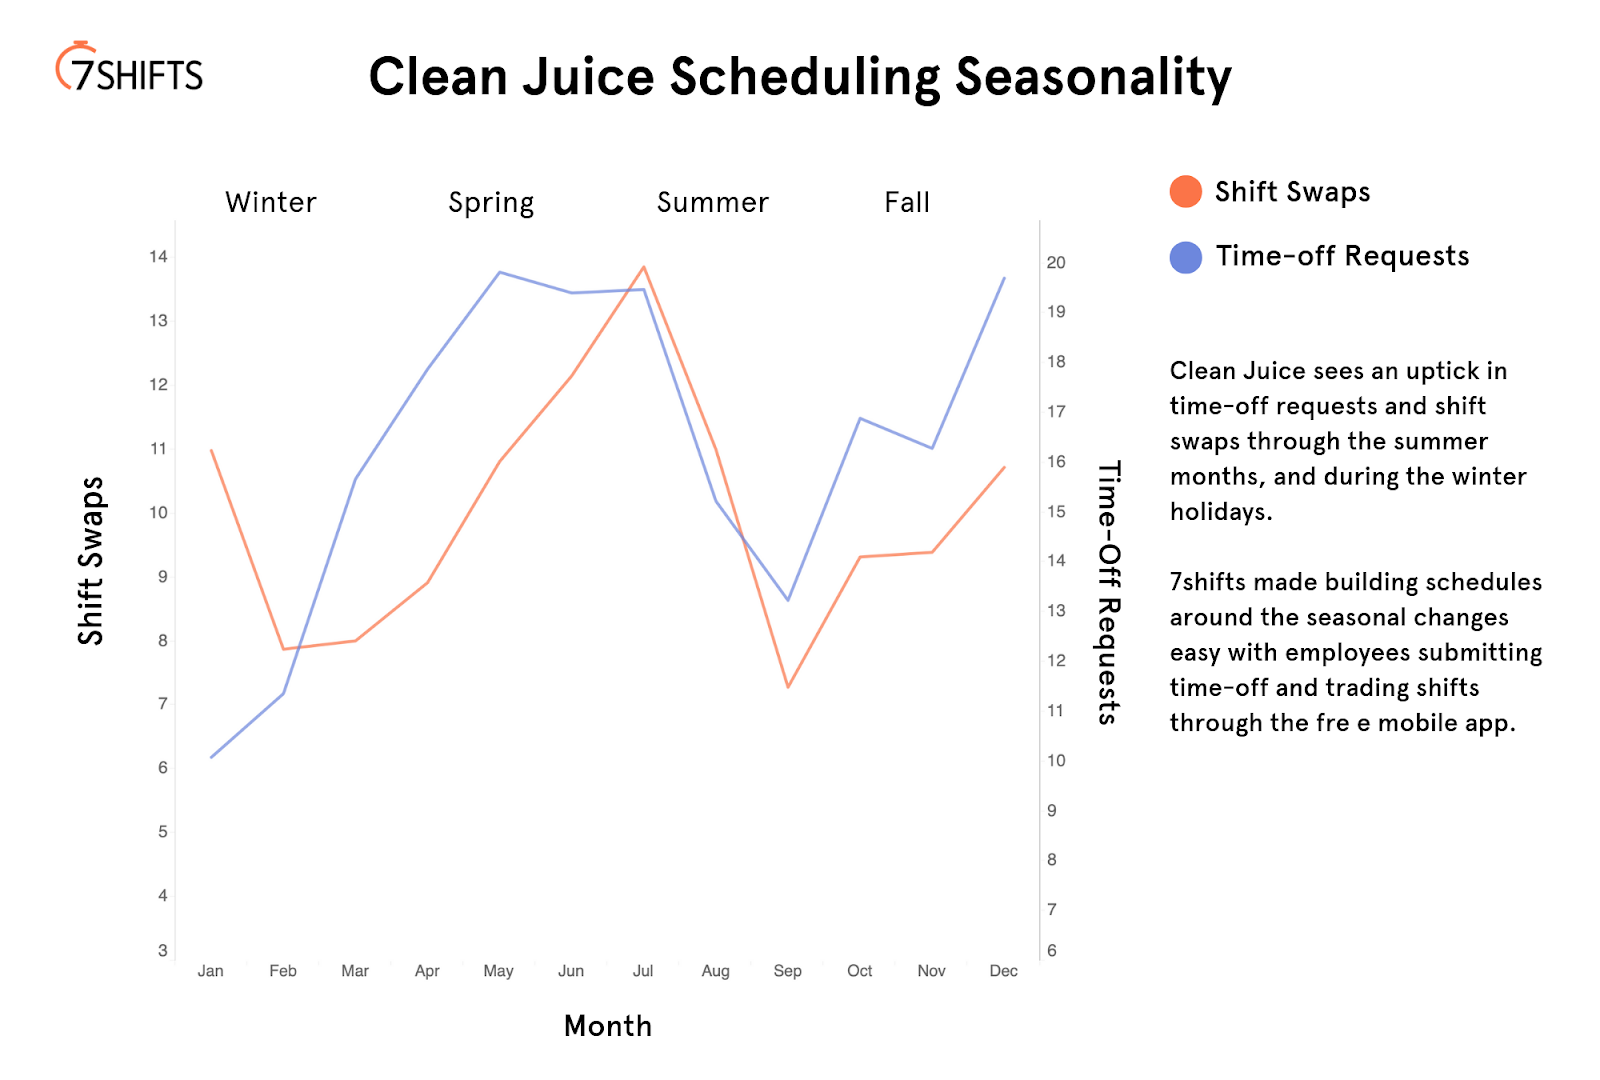 Graph showing Clean Juice Scheduling Seasonality